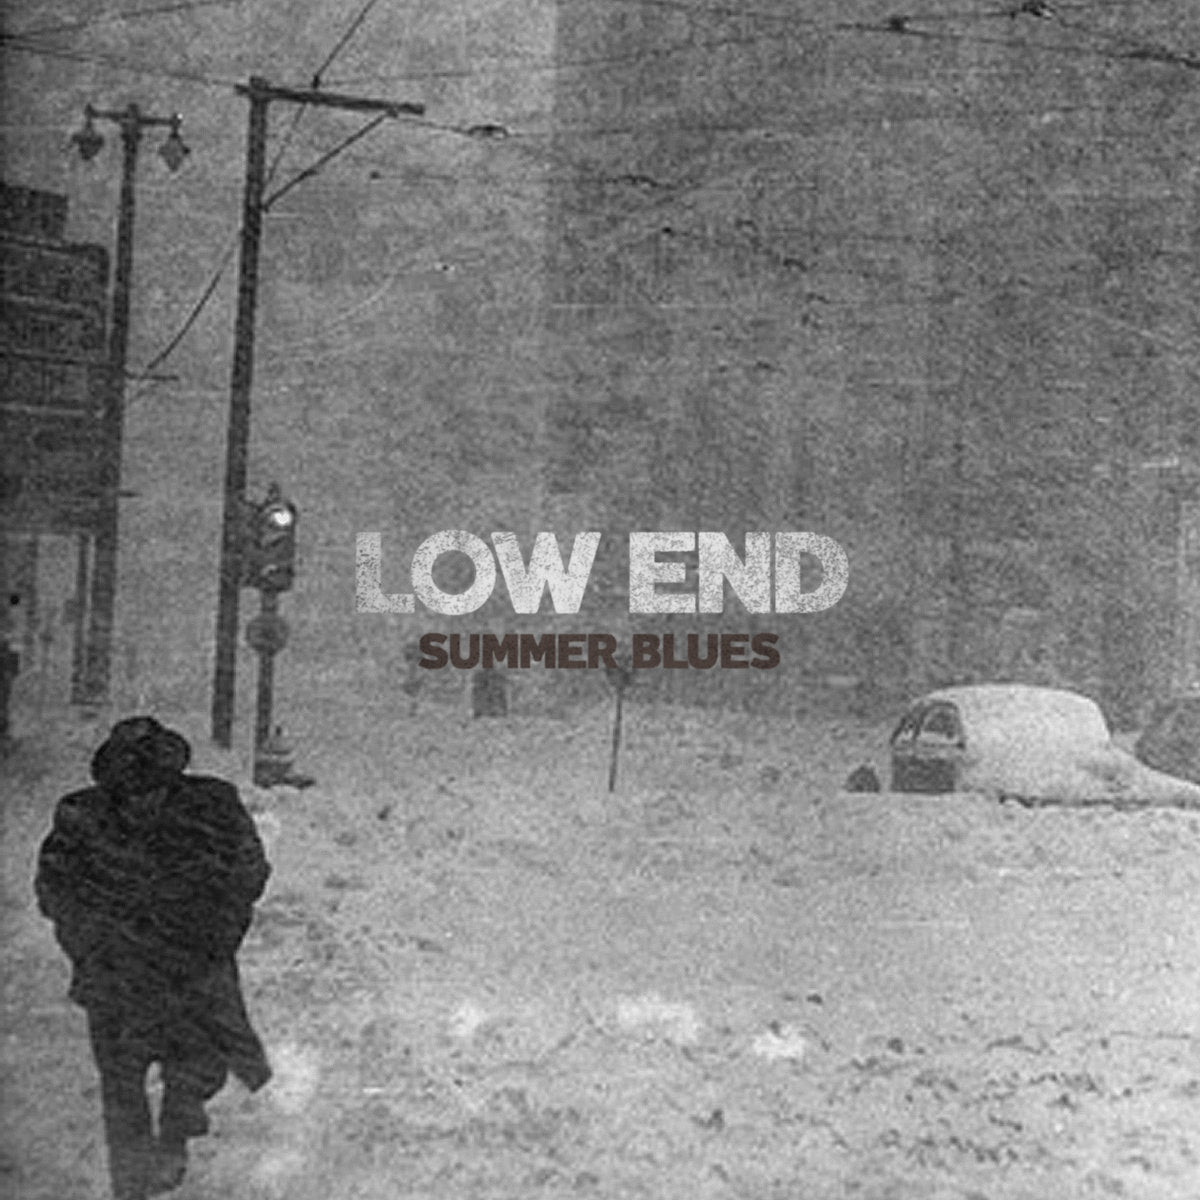 "LOW END 'Summer Blues' Flexi 7"" / COLORED EDITION"